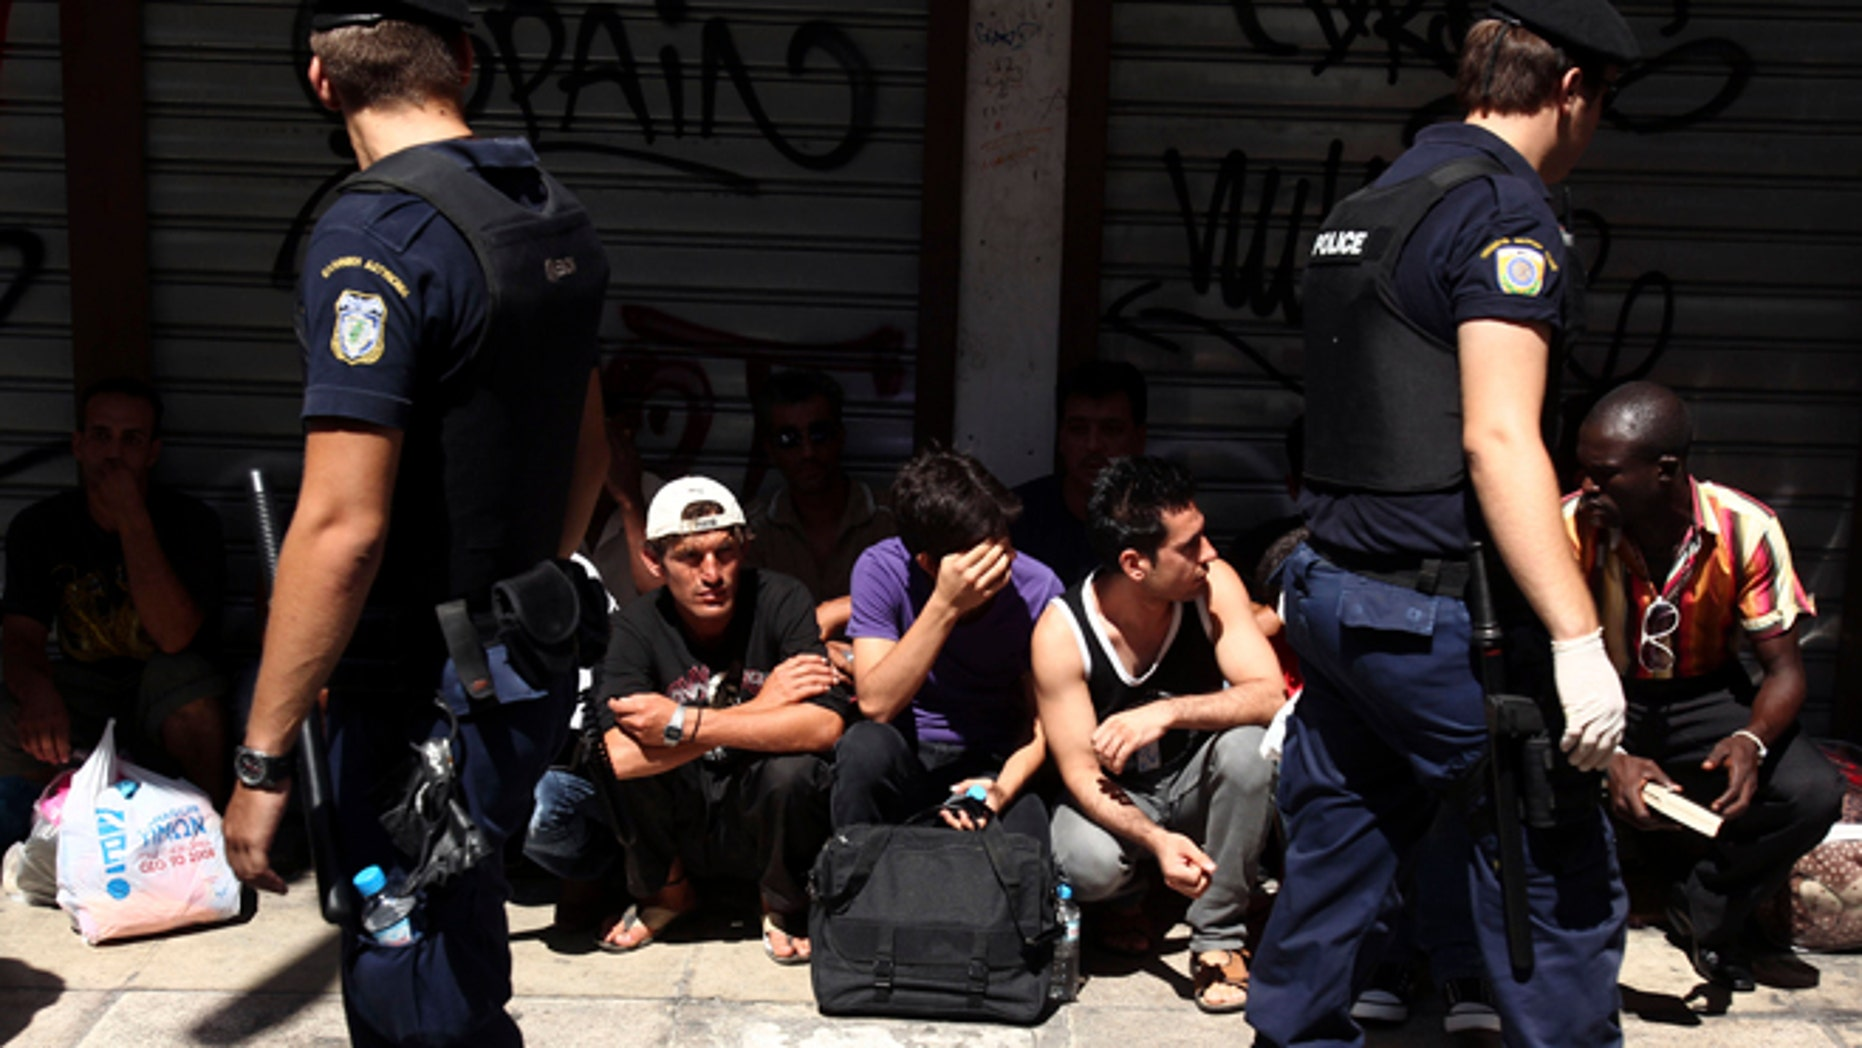 August 5, 2012: Police detain a group of migrants in central Athens.